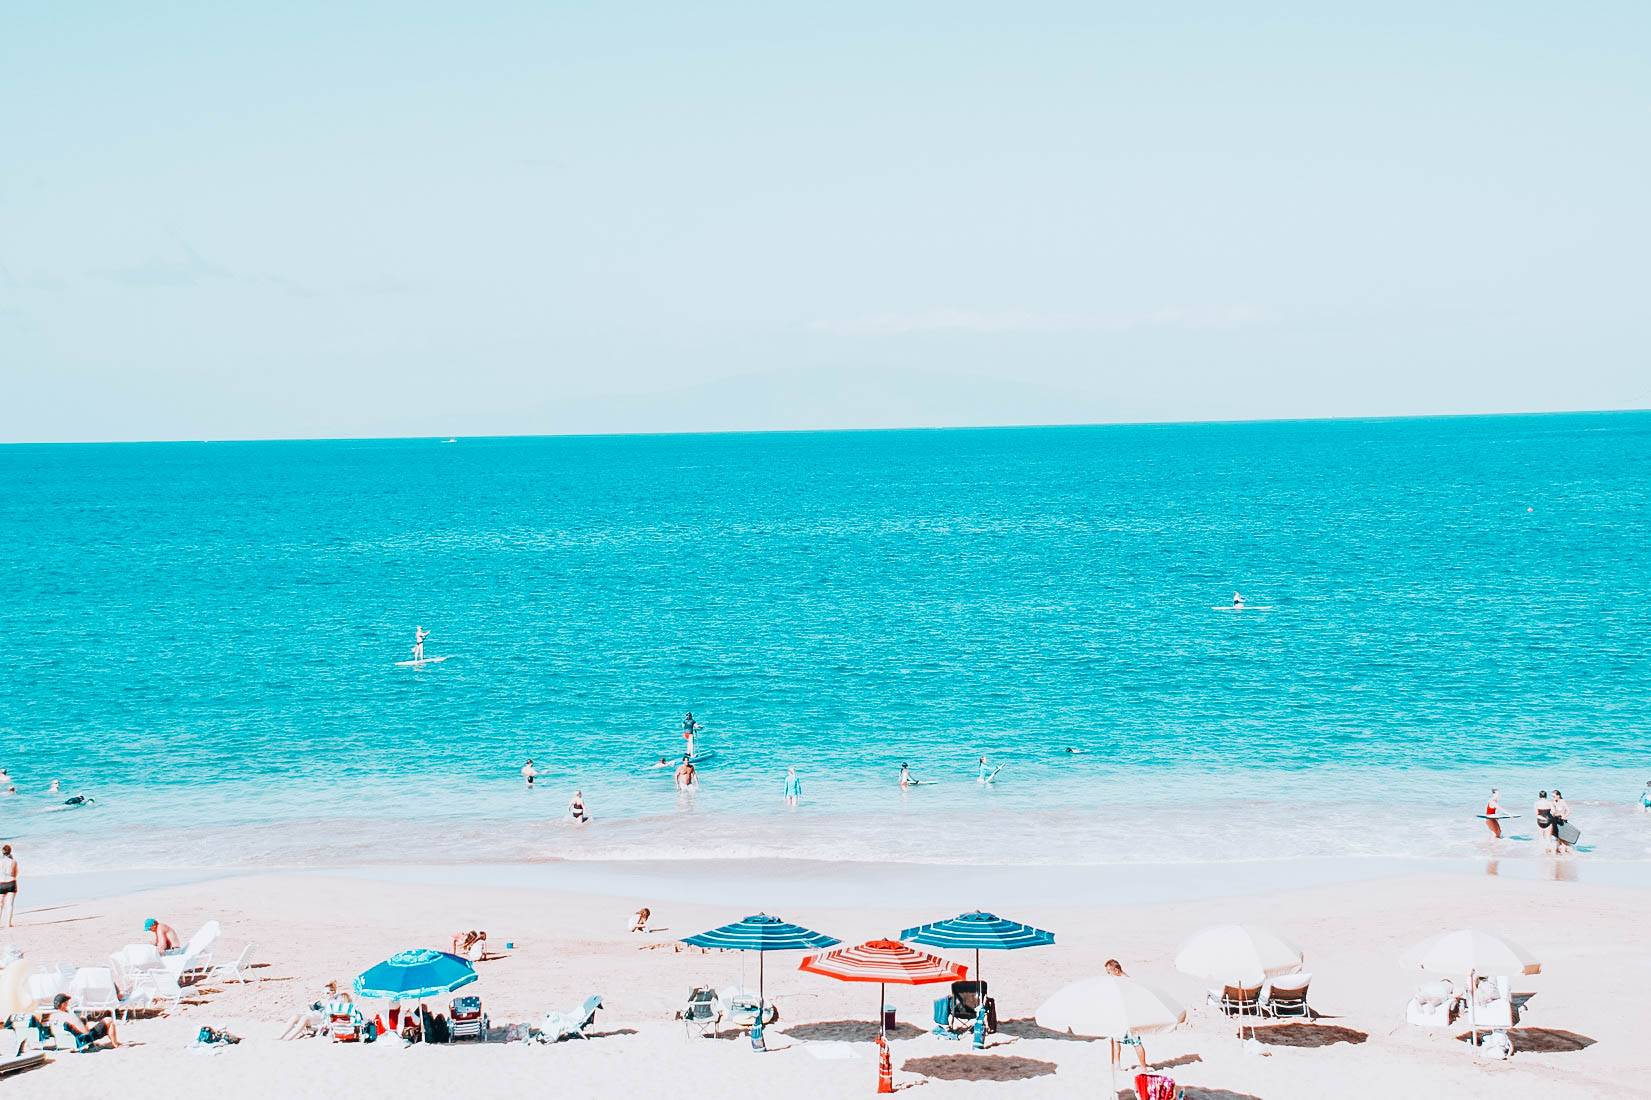 12 of the Best Beach Holiday Destinations that will help making your beach vacations that much easier. #Beach #Holidays #Wintersun #Wintergetaways #Sunshine